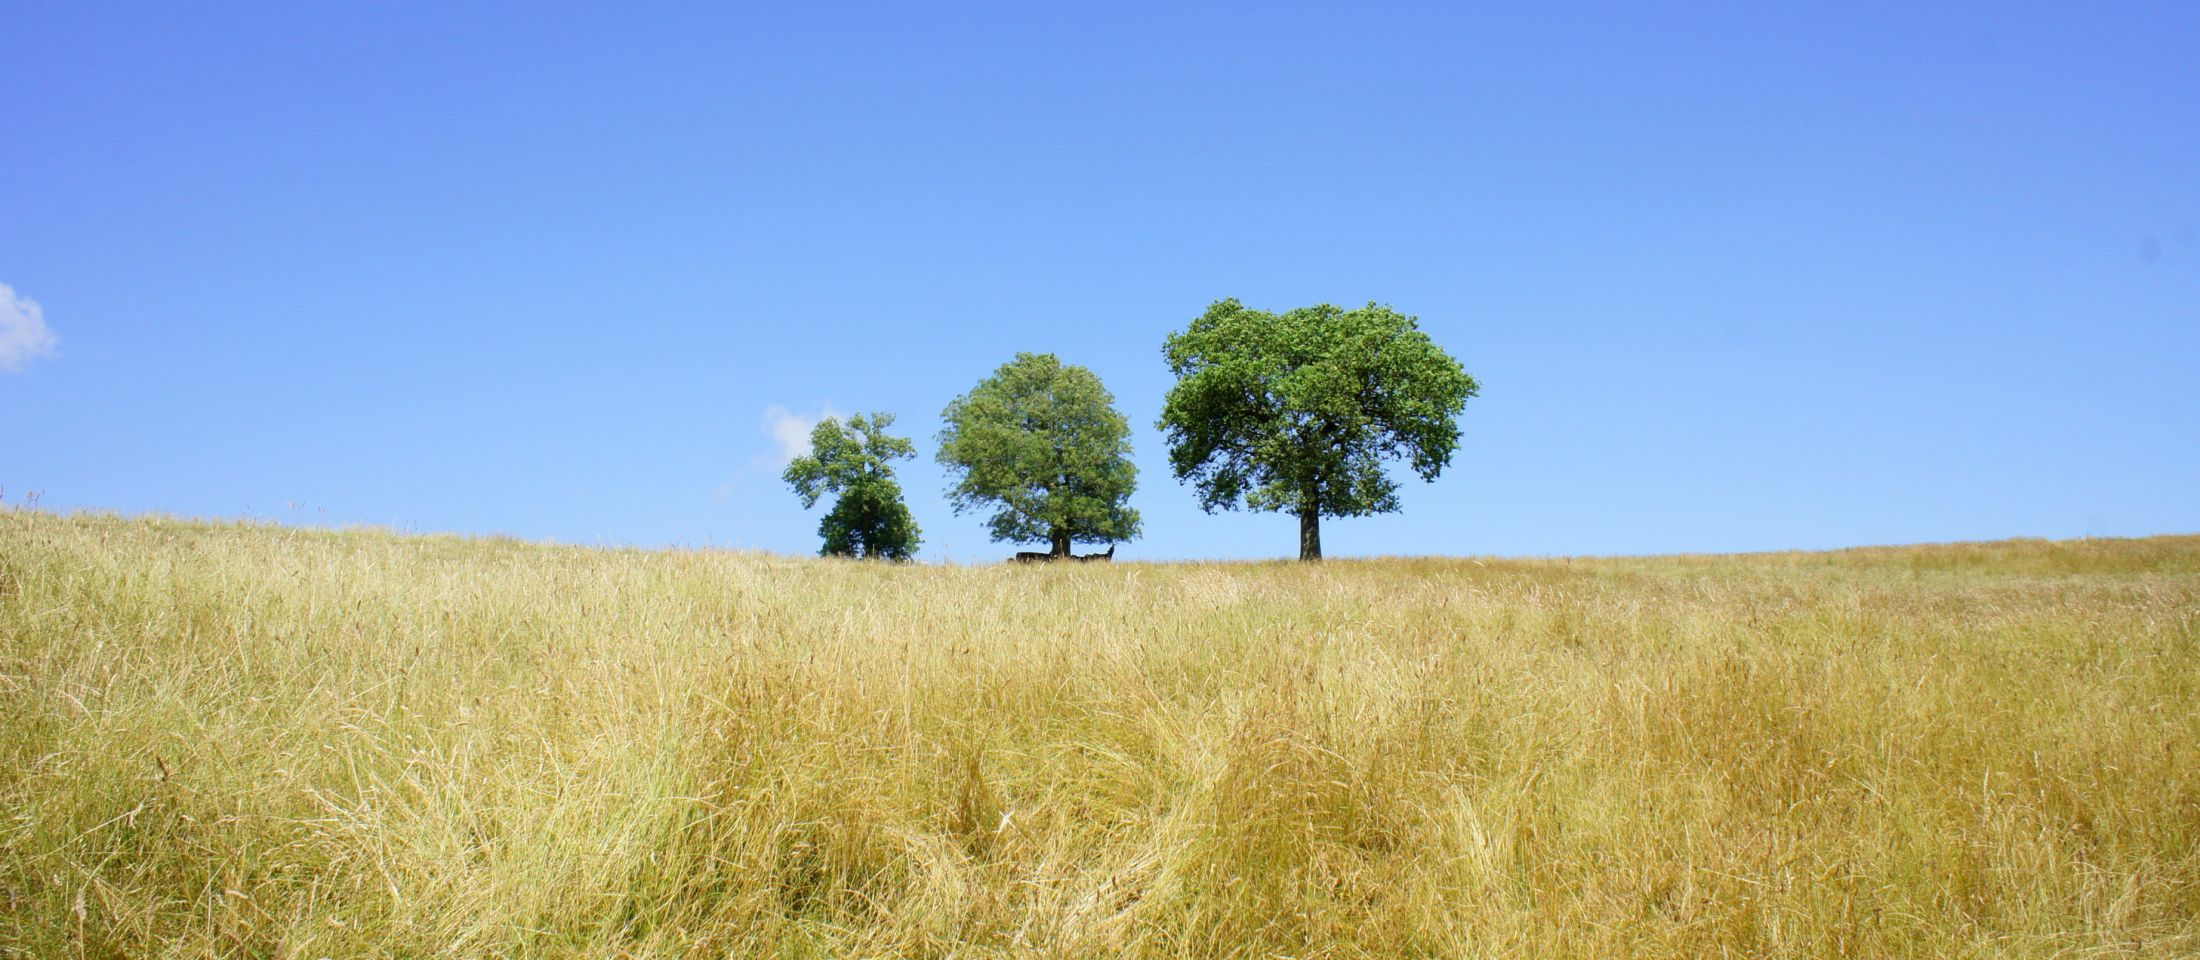 Ash, Ash, Oak in Brabourne, Kent Downs, July 2013. Photo: The Ash Project, Kent DownsKent Downs AONB